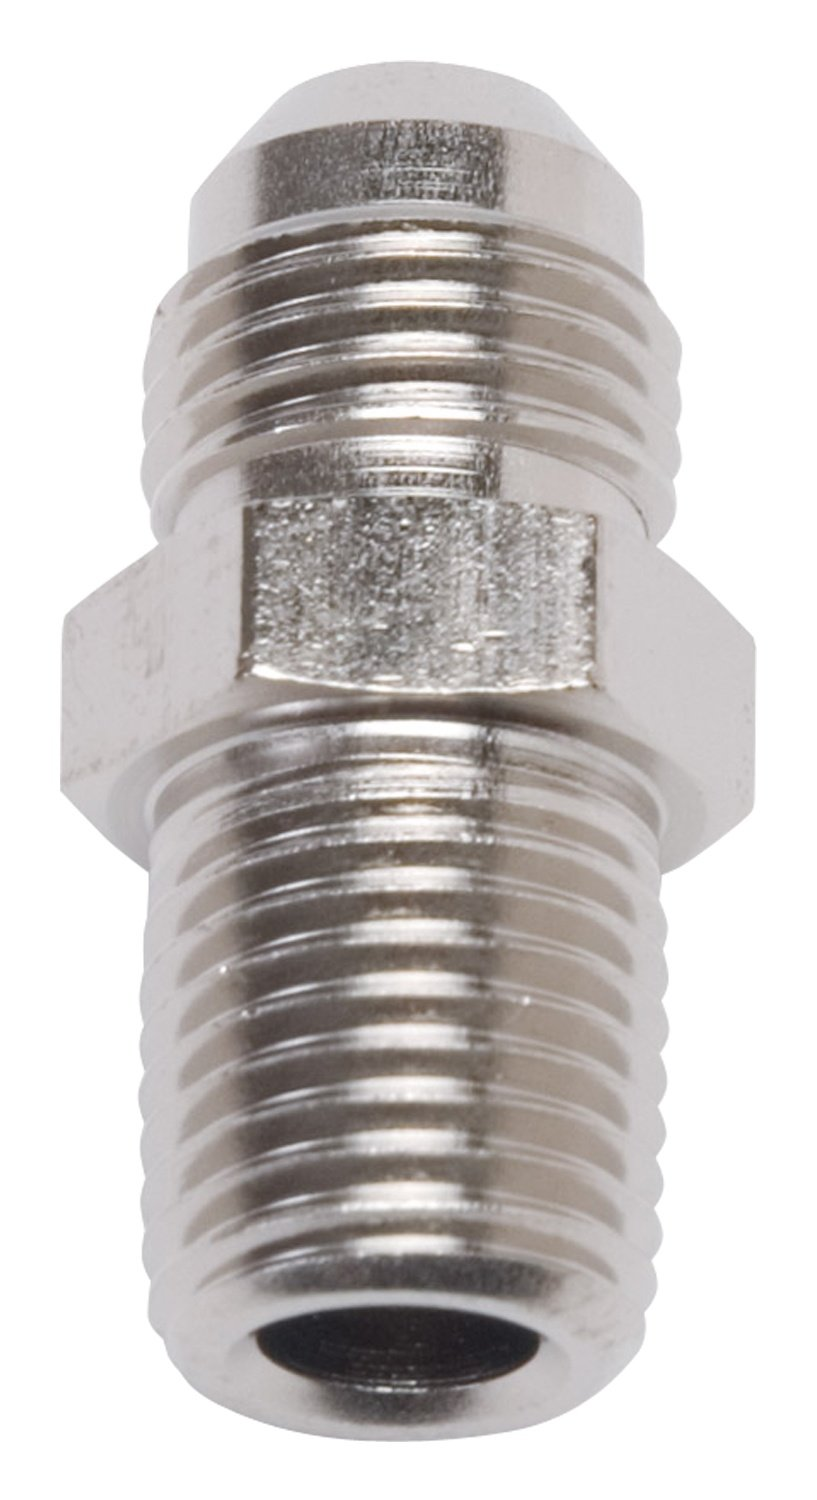 Russell RUS-663010 ADAPTER FITTING